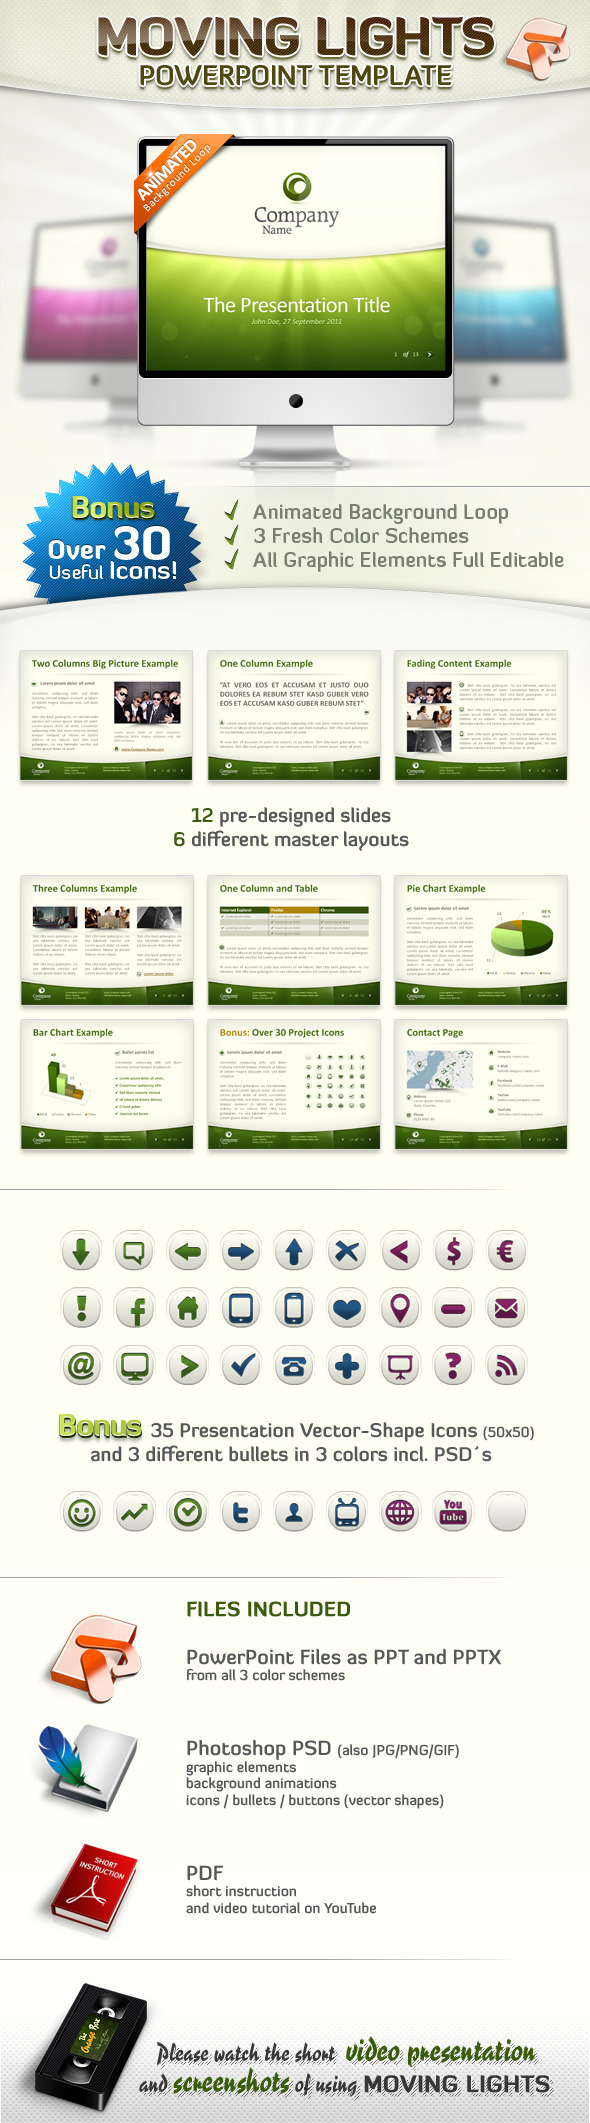 Moving Lights – PowerPoint Template - Powerpoint Templates Presentation Templates